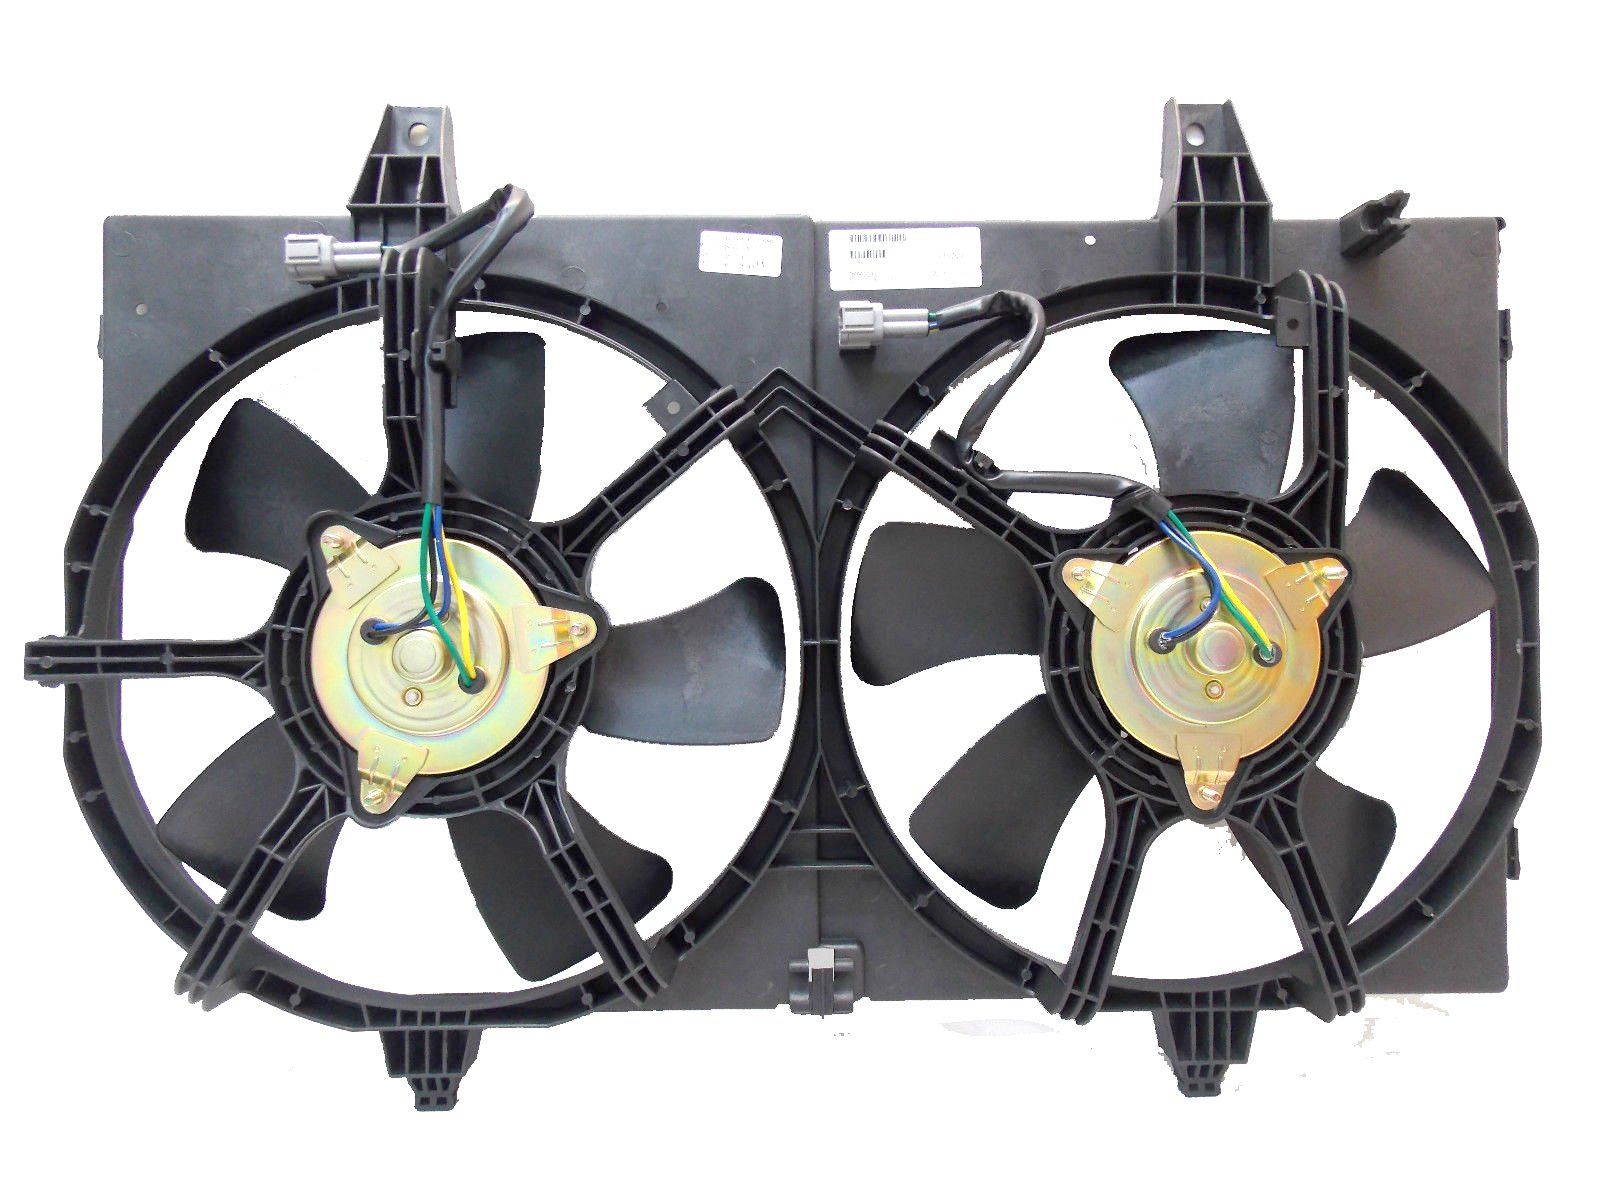 RADIATOR CONDENSER COOLING FAN FOR NISSAN FITS MAXIMA I35 3.5 NI3115122